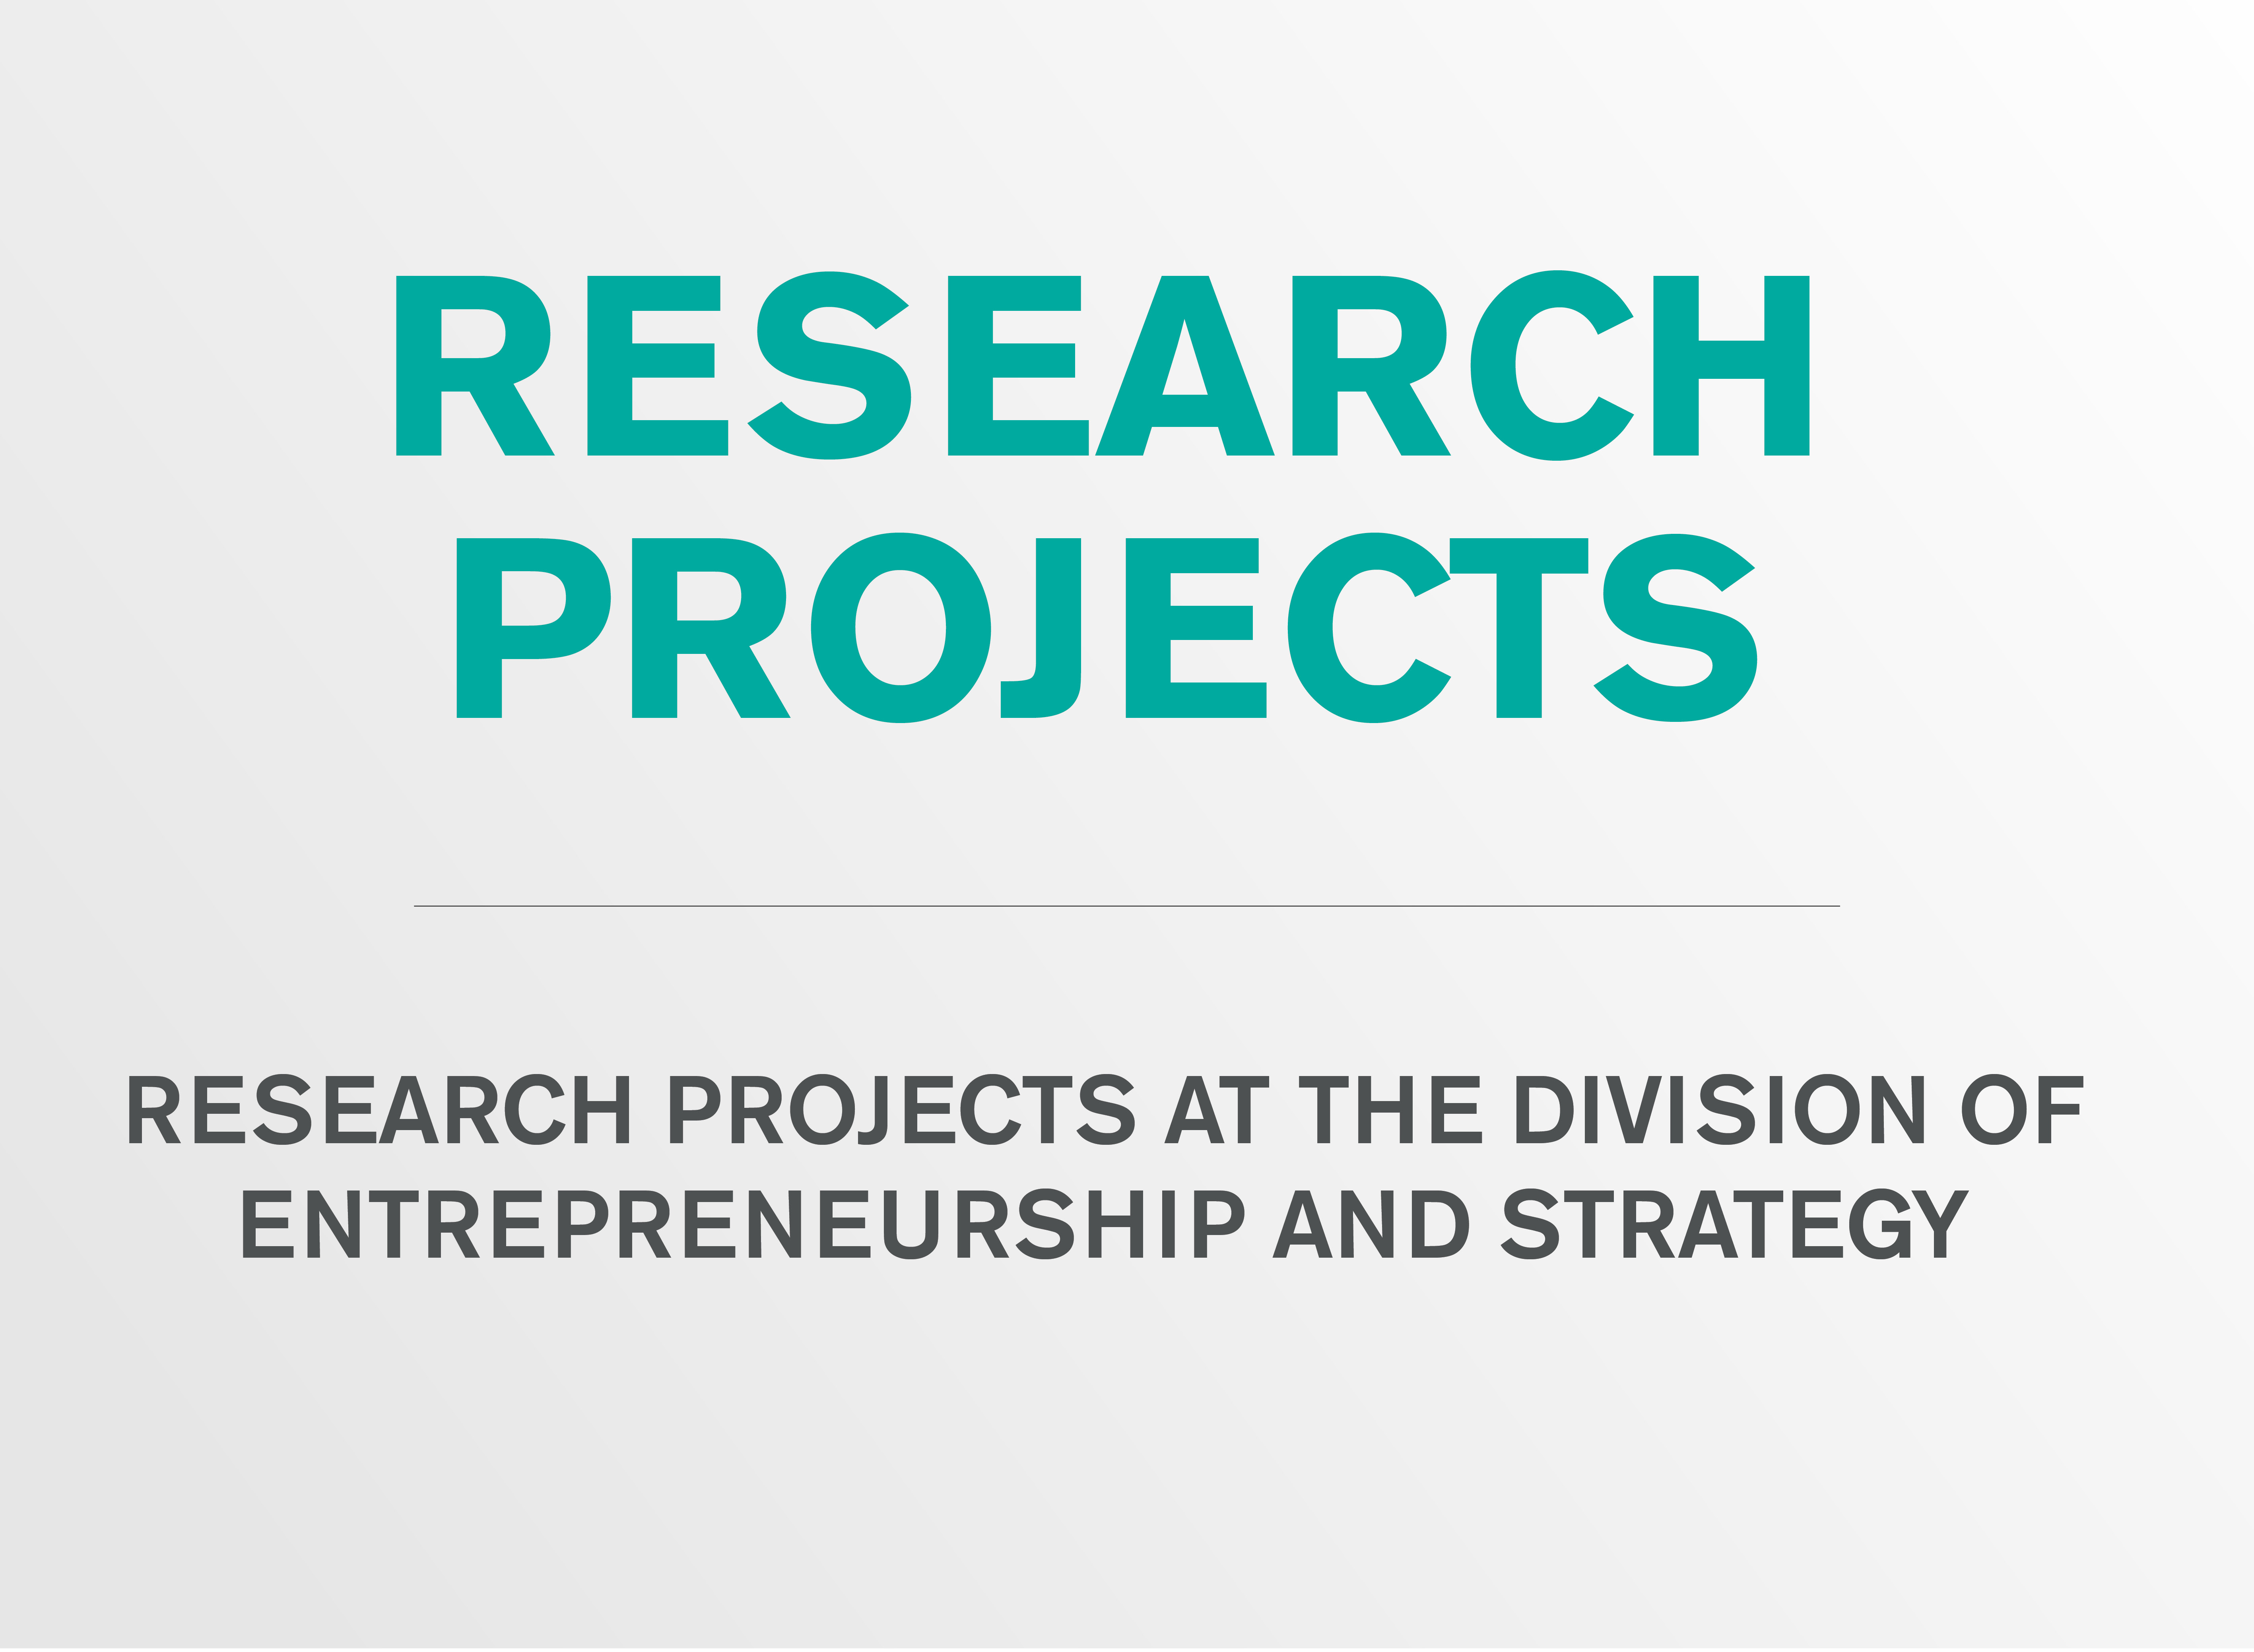 Research projects at the division of Entrepreneurship and Strategy.